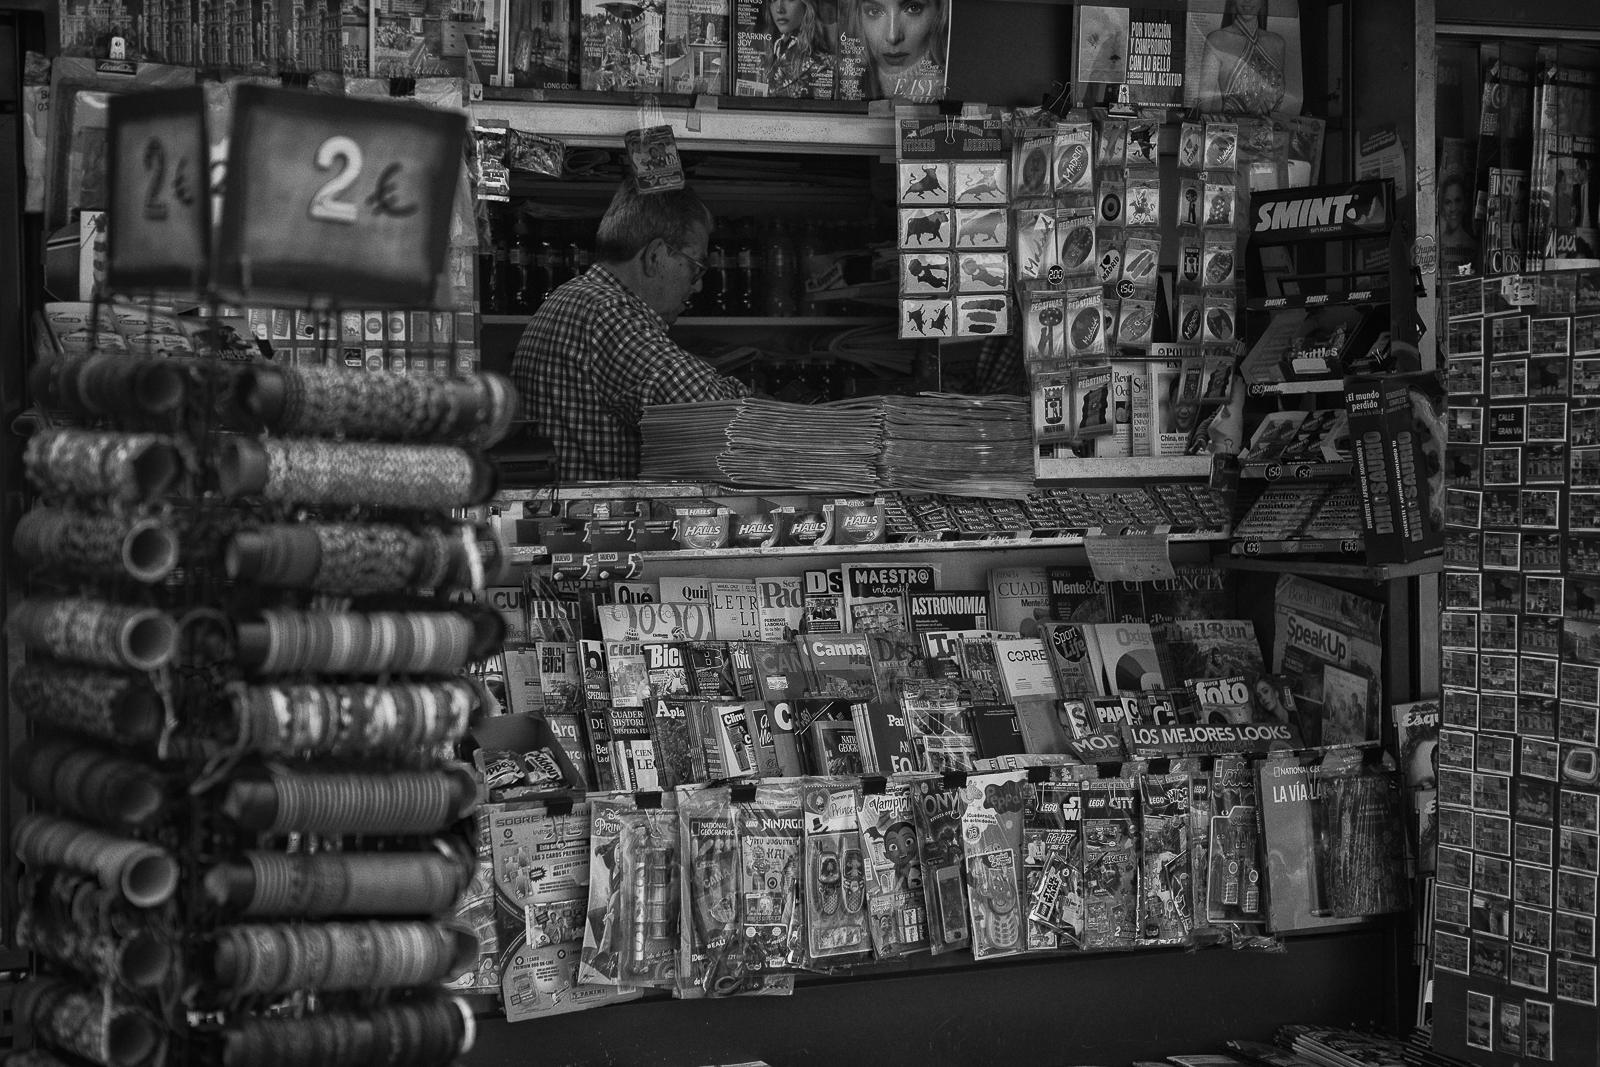 Newspaper stand is one of the few places that are allowed to be open during the coronavirus lockdown in the city center of Madrid.